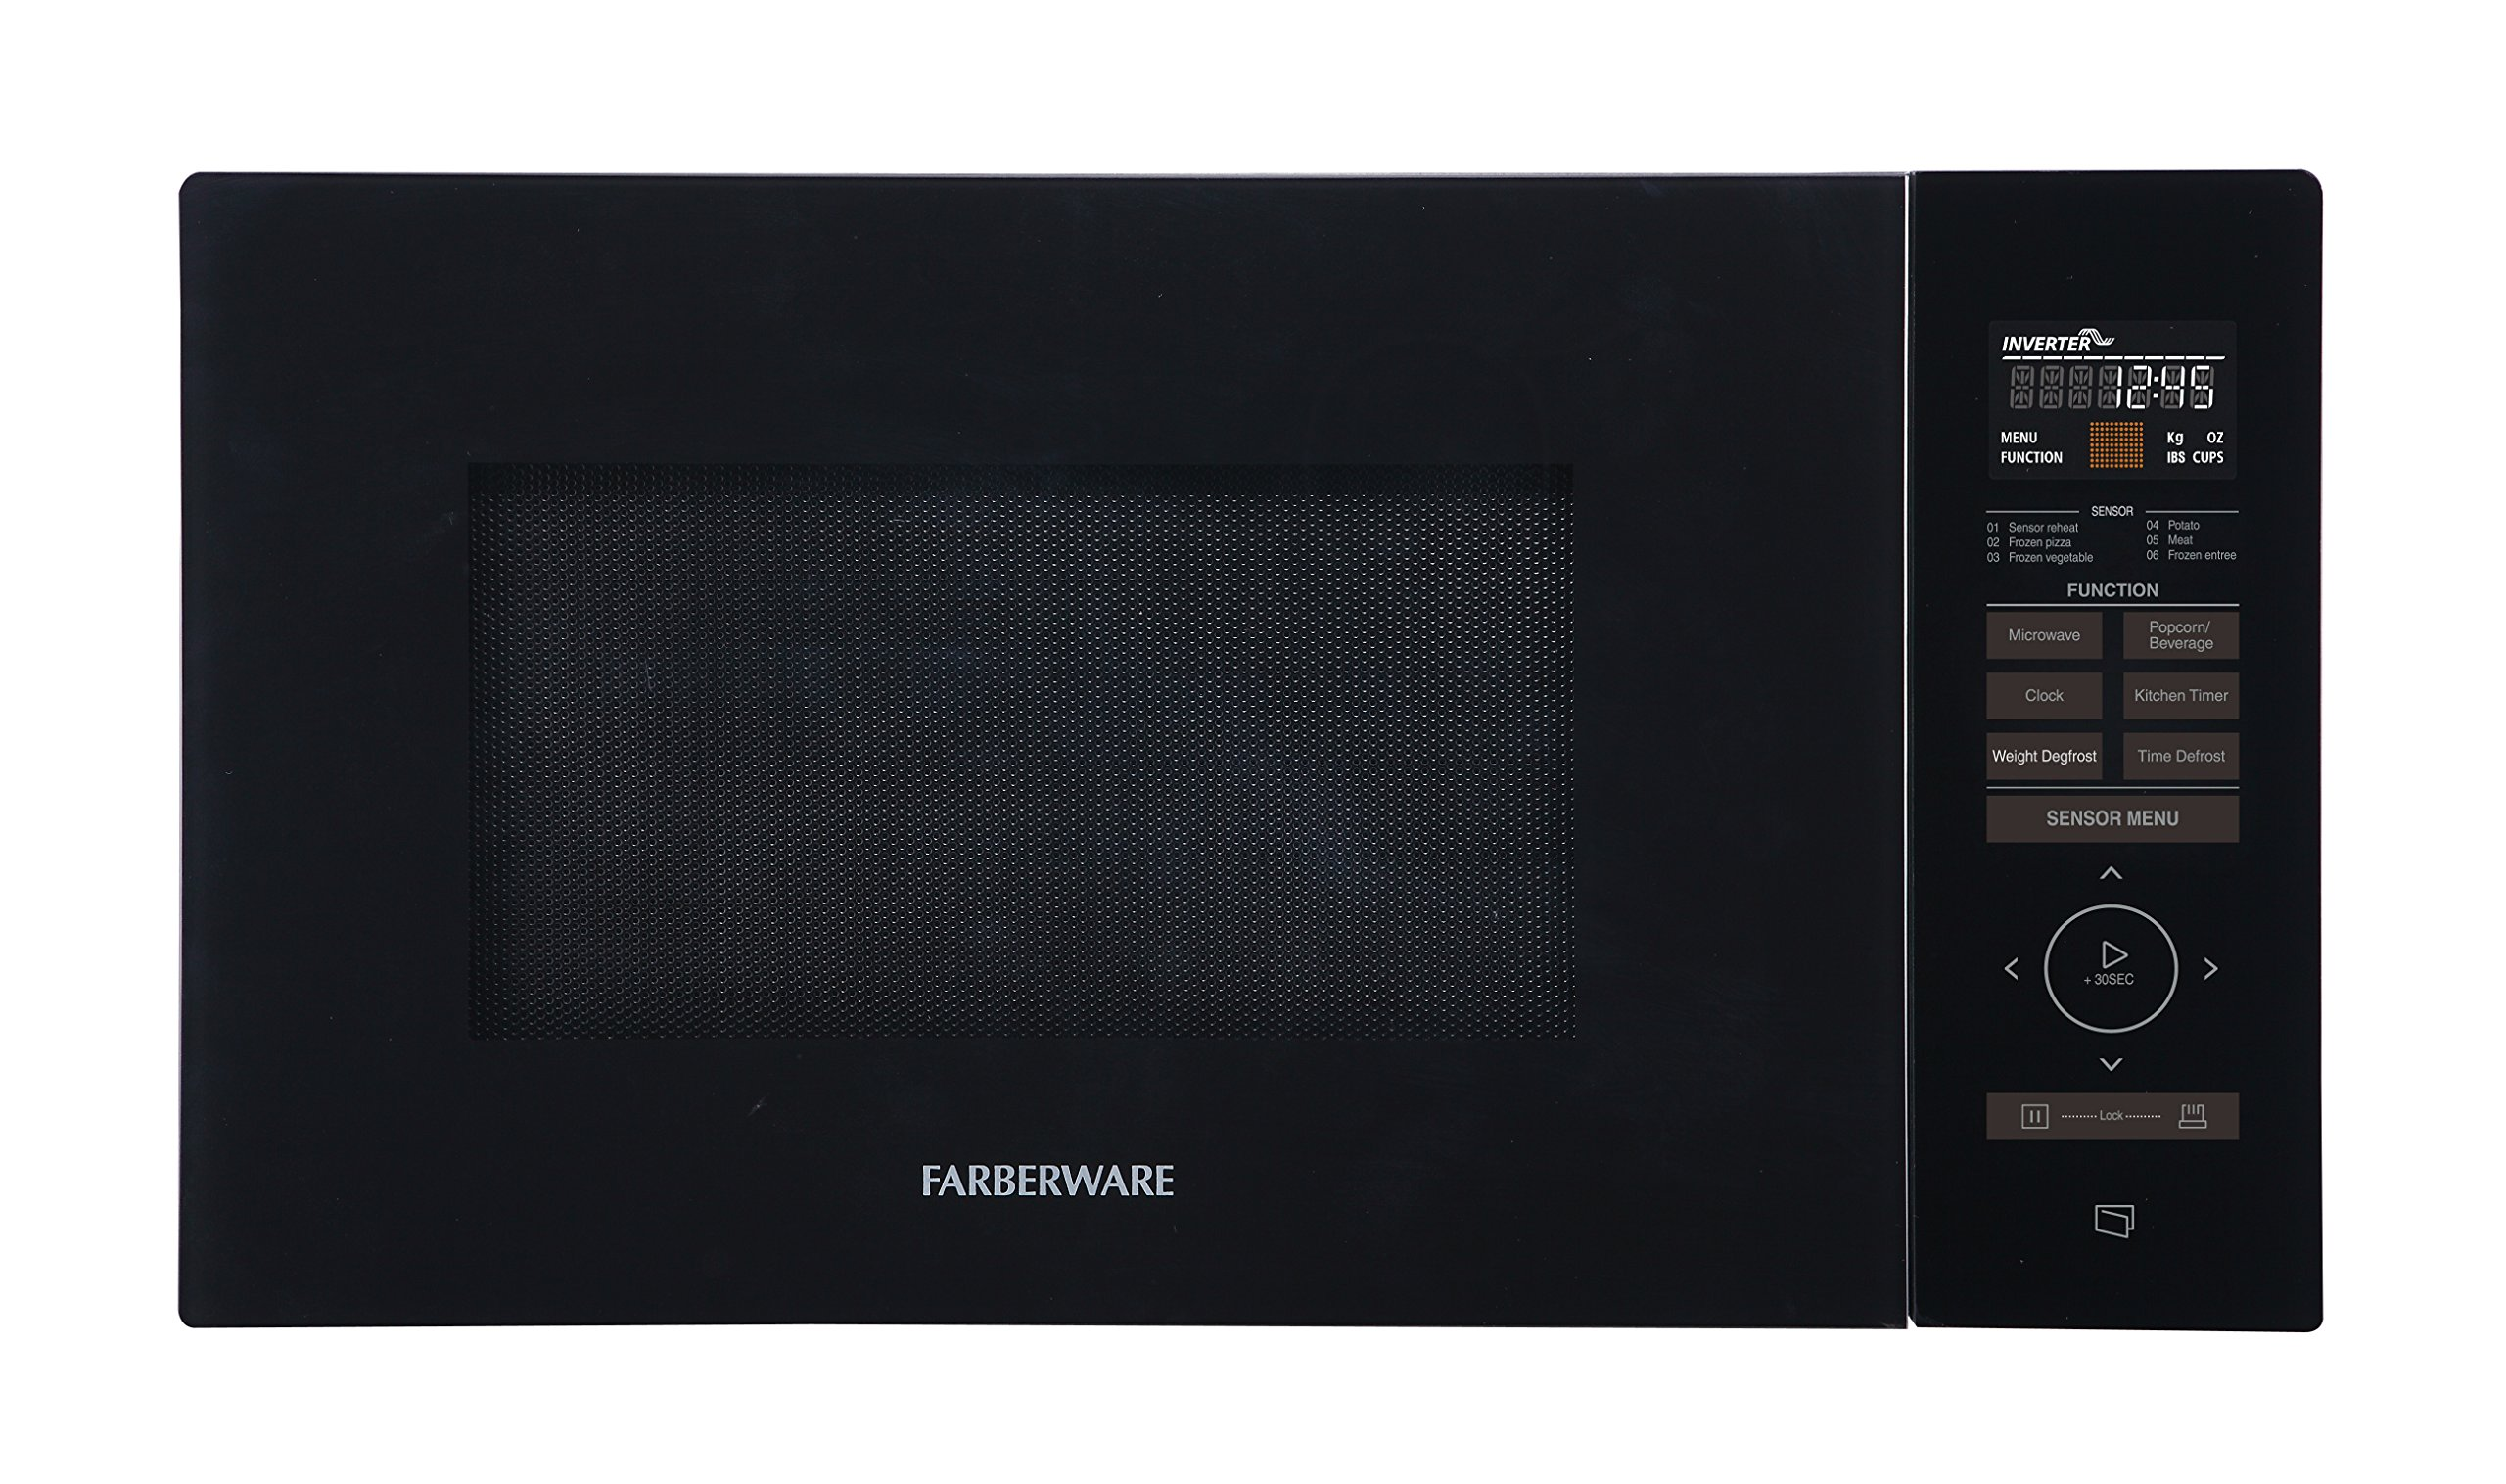 Farberware Gourmet FMO11AESBKA Microwave Oven, 1.1 Cubic Foot 1100 Watt with Smart Sensor, Inverter Technology, and Sensor Touch Control Panel, Black by Farberware